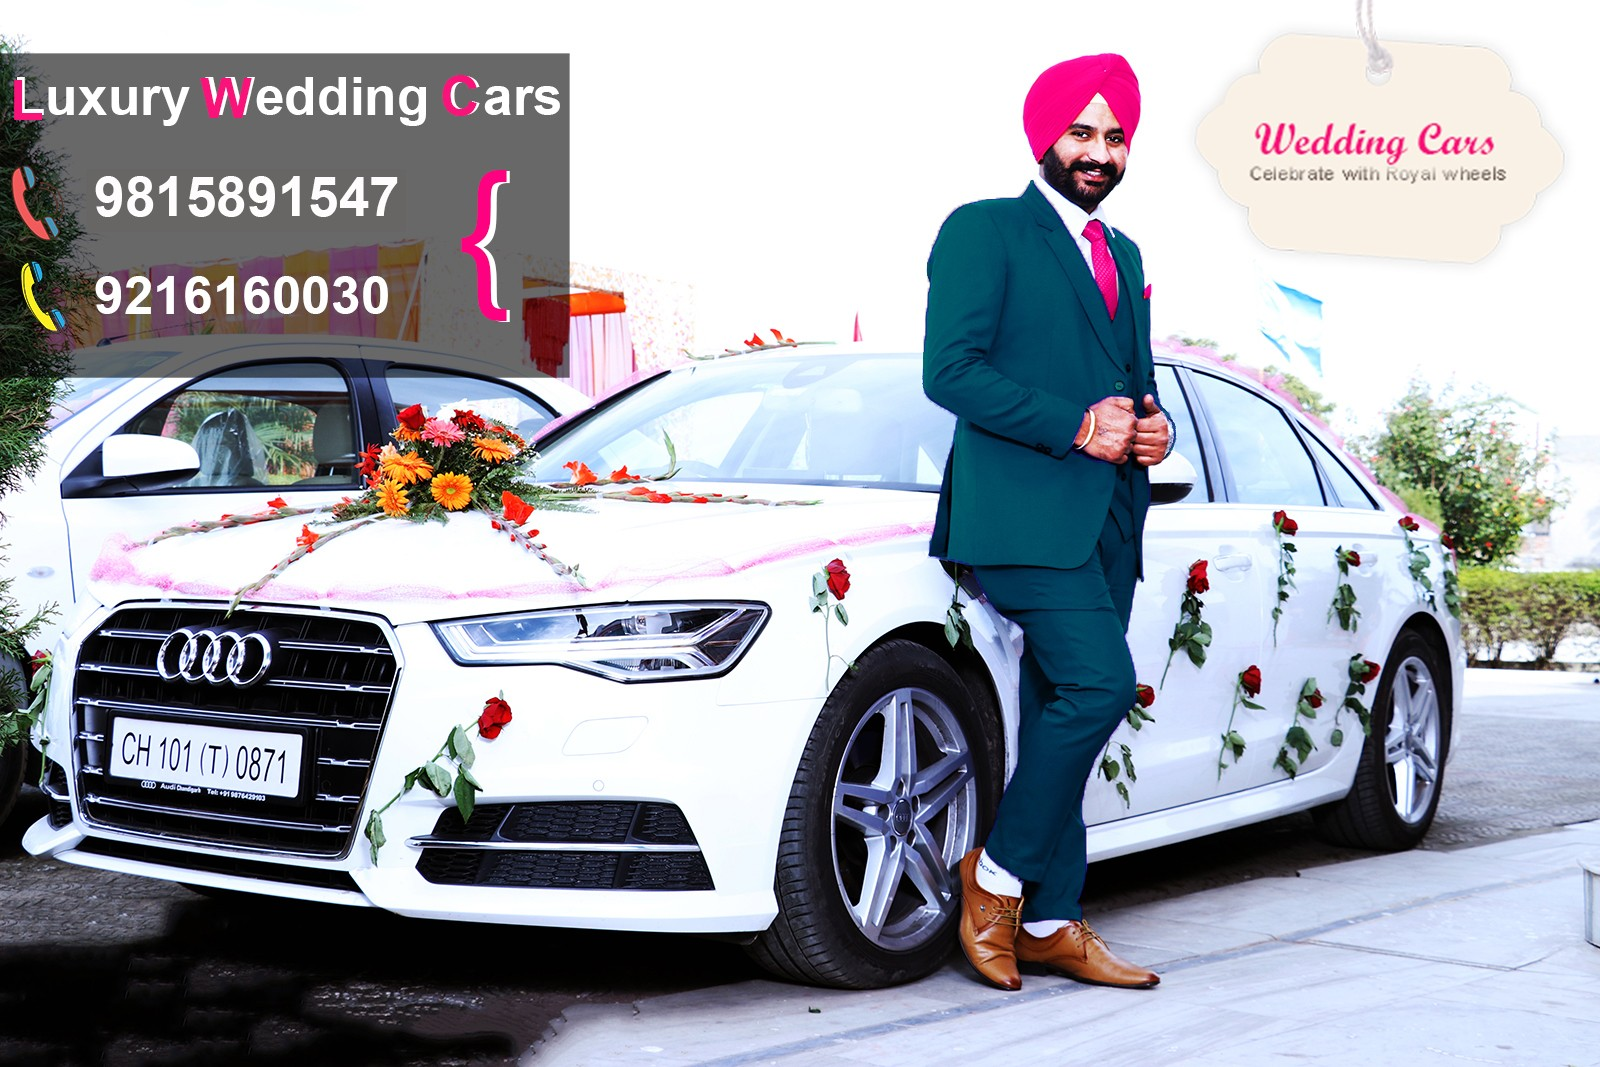 Audi Car For Wedding In Punjab Audi Hire For Wedding Wedding Audi Cars In Punjab